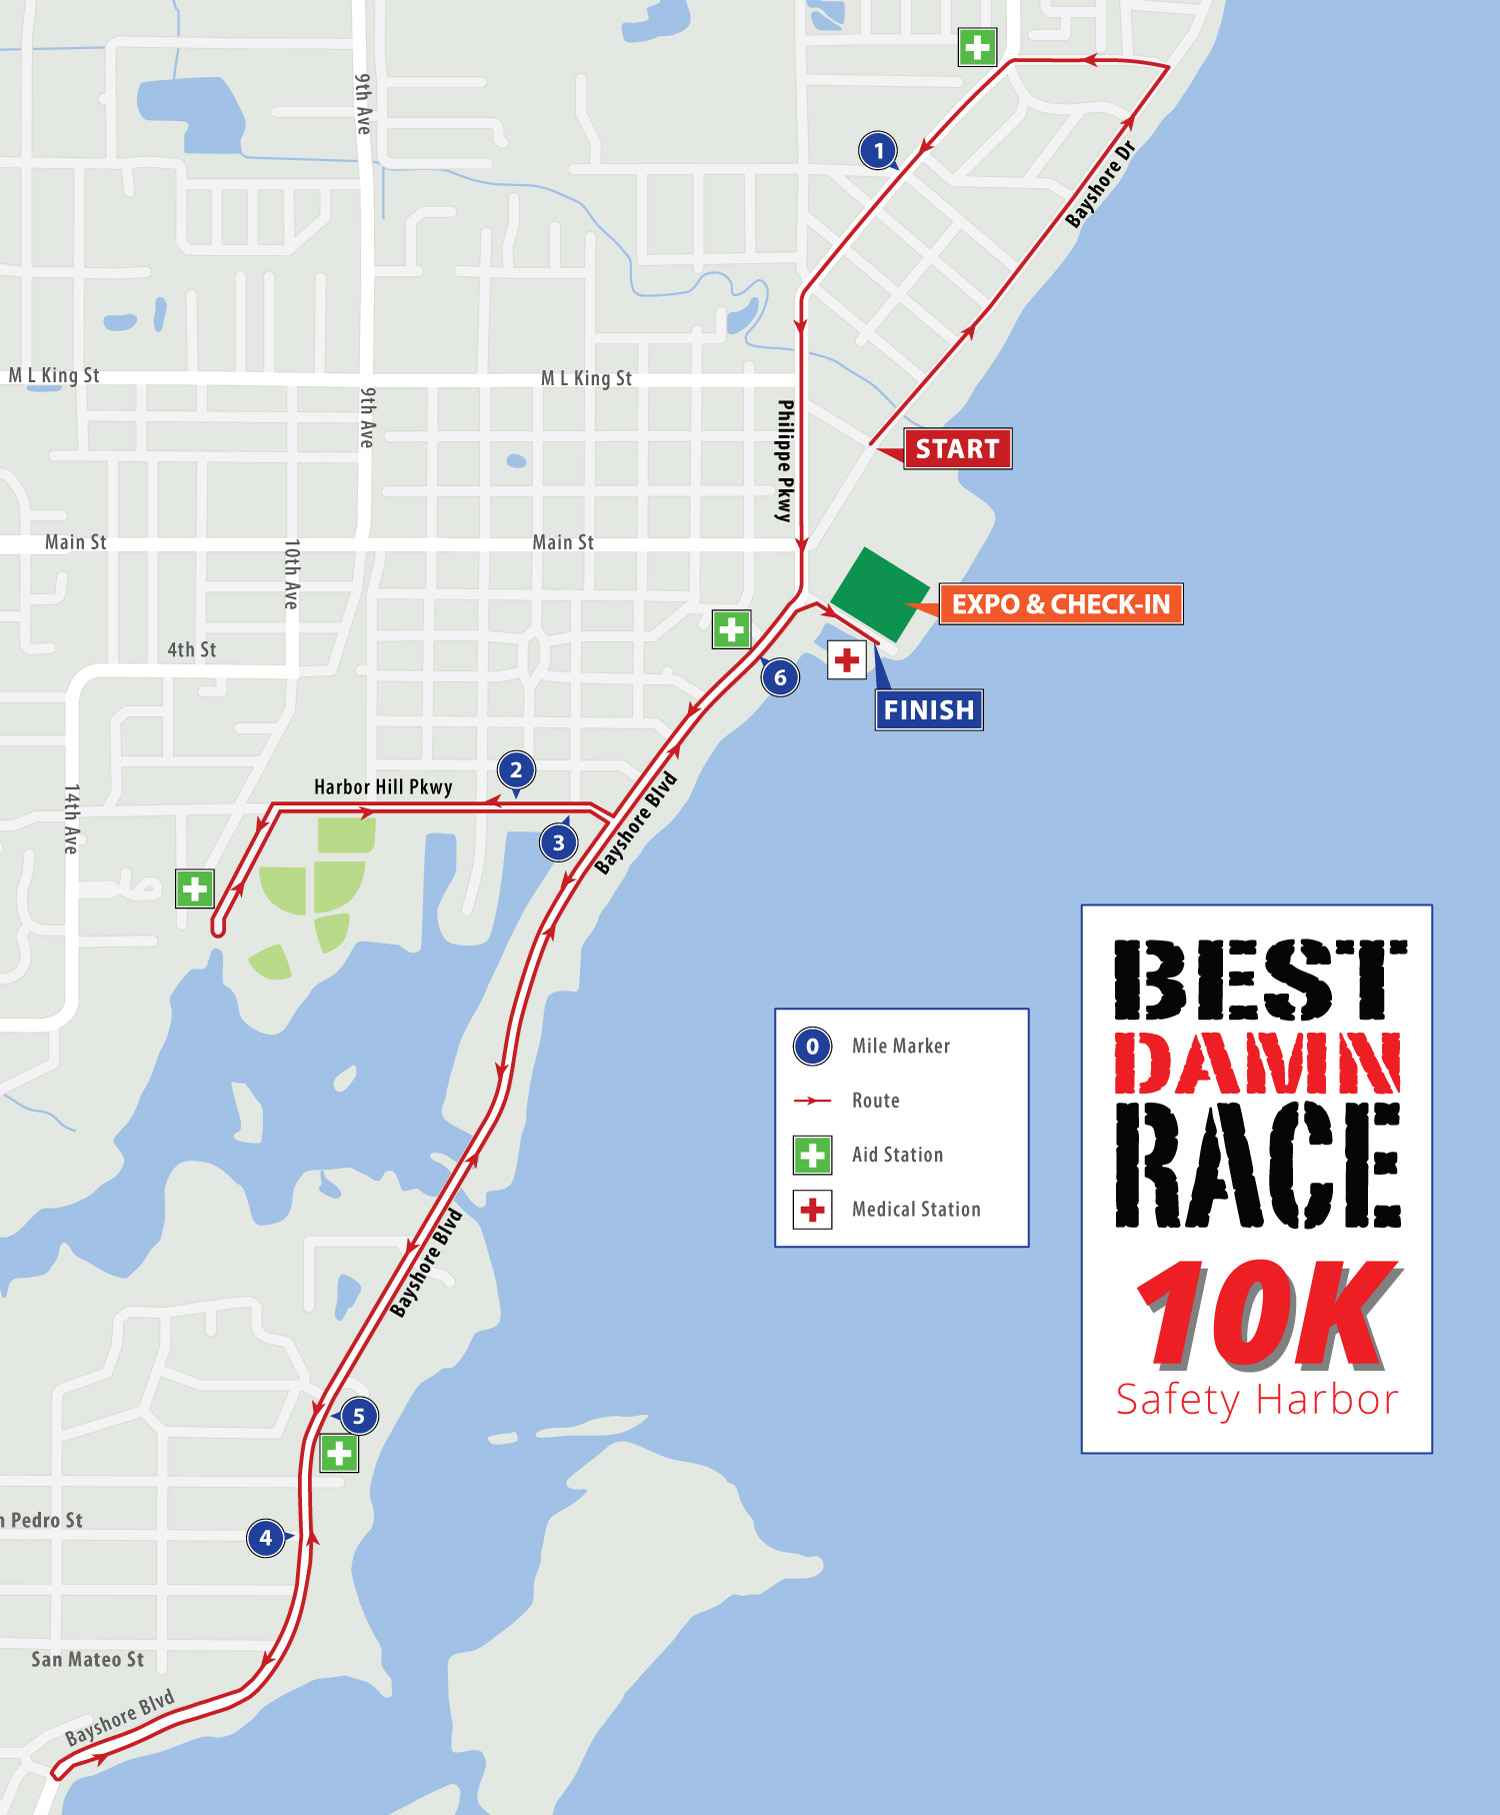 10K - Safety Harbor